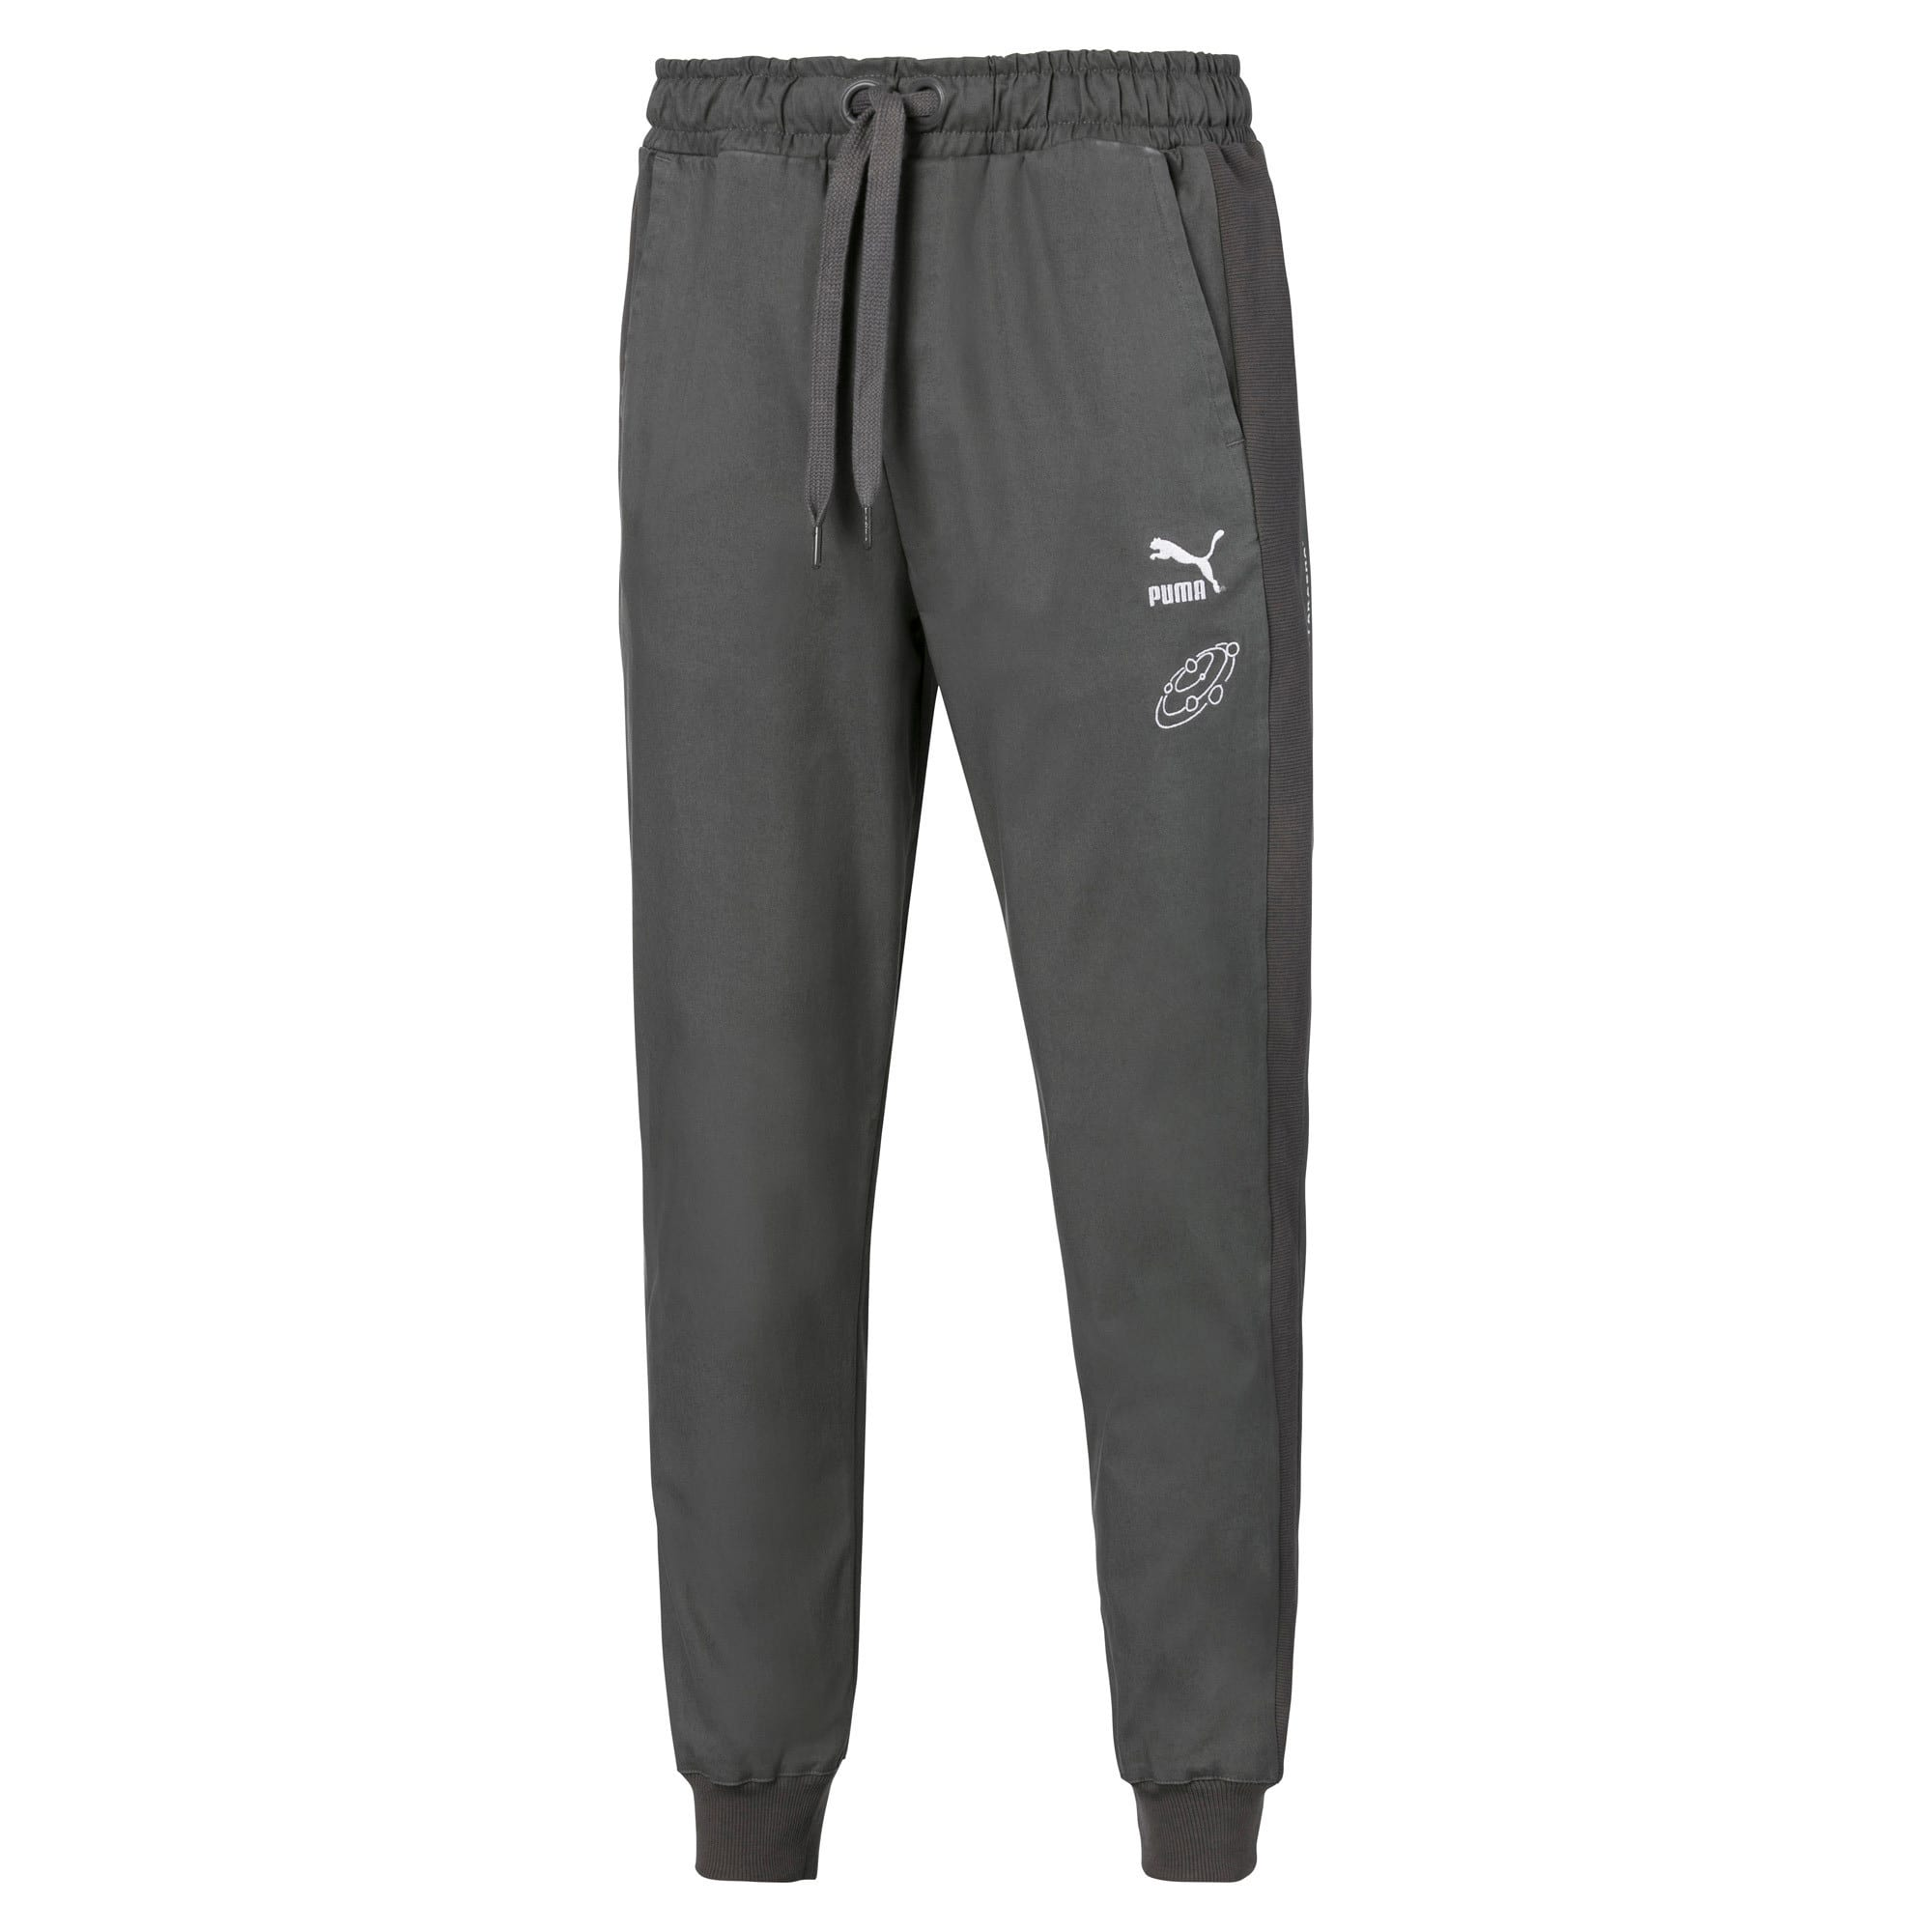 Thumbnail 1 of PUMA x TYAKASHA Woven Men's Pants, CASTLEROCK, medium